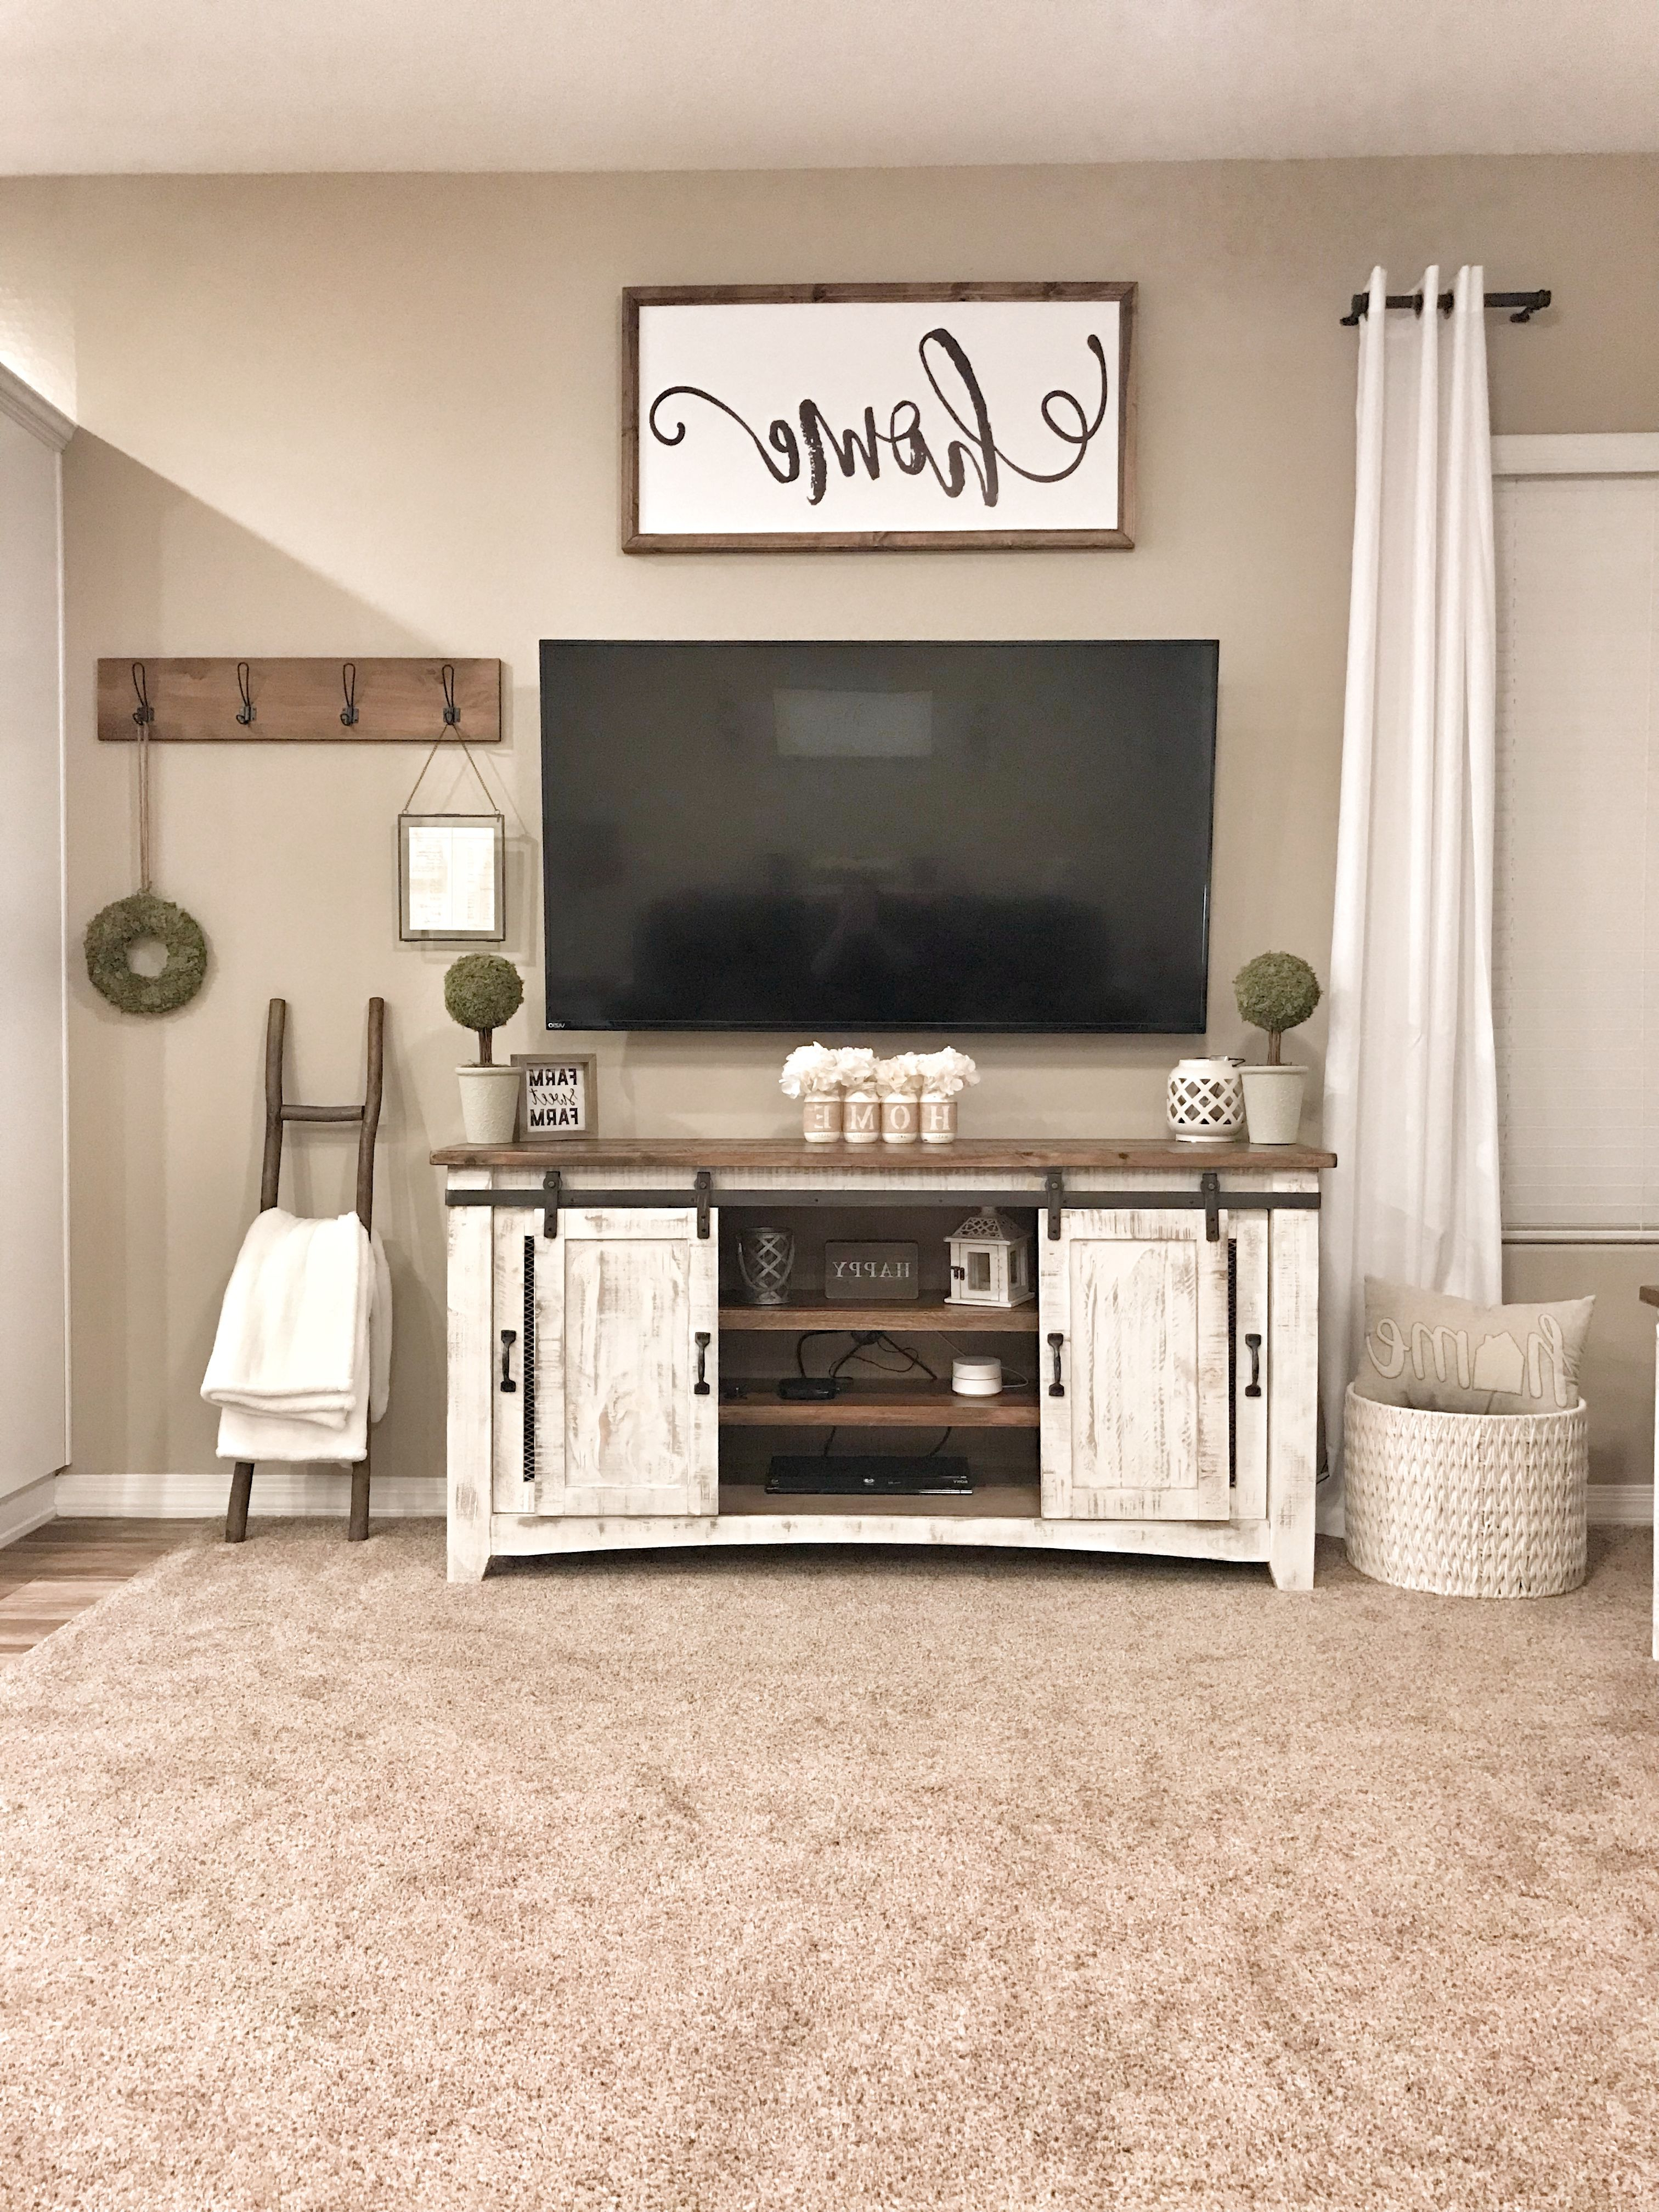 New Home Decor In 2019 (Gallery 8 of 20)